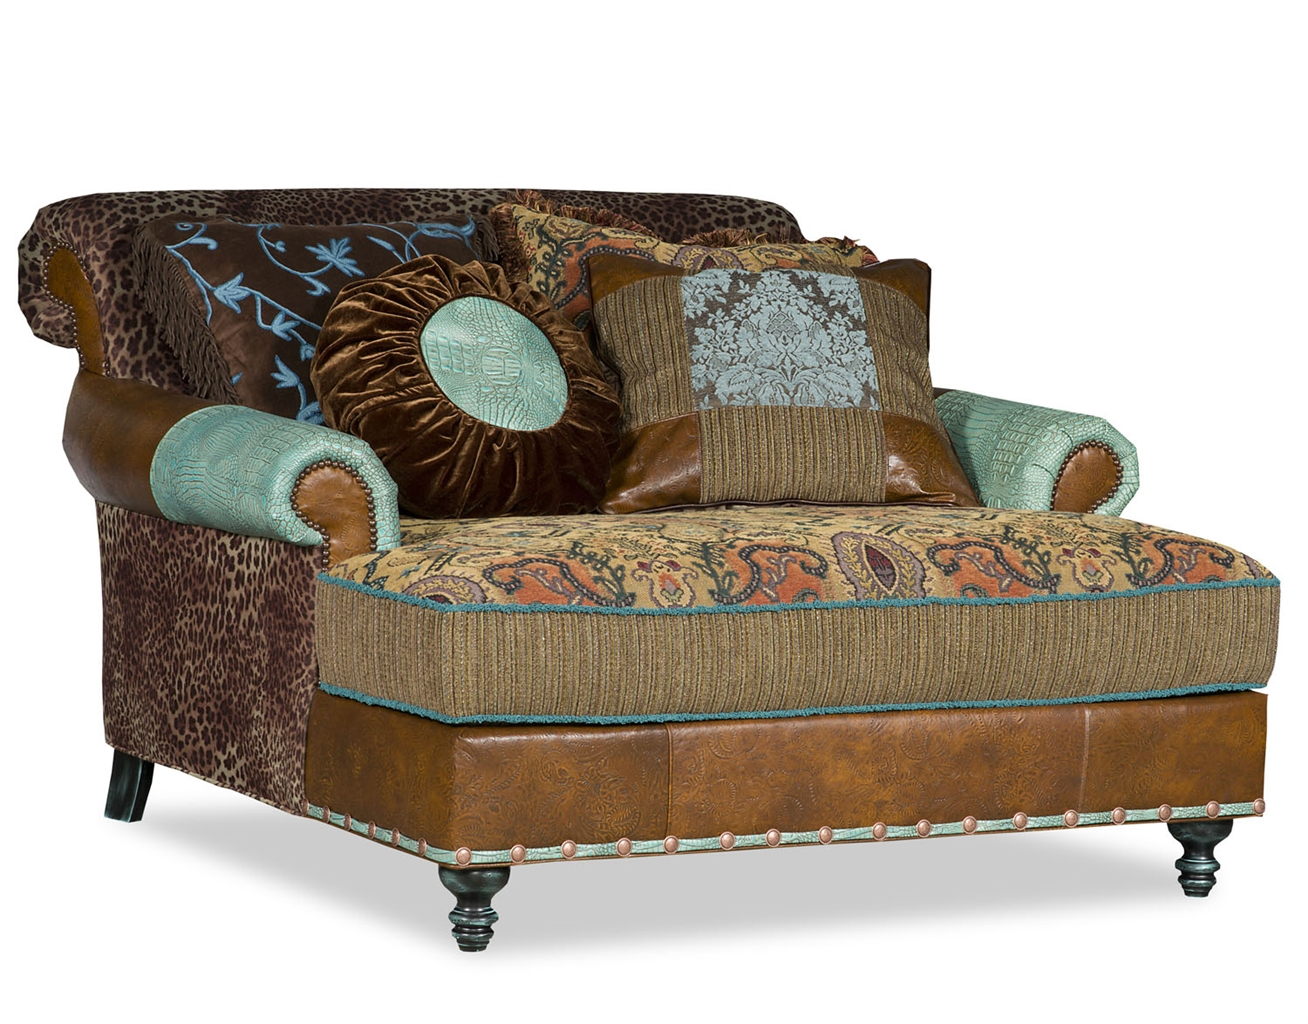 Luxury Leather u0026 Upholstered Furniture Double chair chaise with Cheetah fabric.  sc 1 st  Bernadette Livingston : cheetah chaise - Sectionals, Sofas & Couches